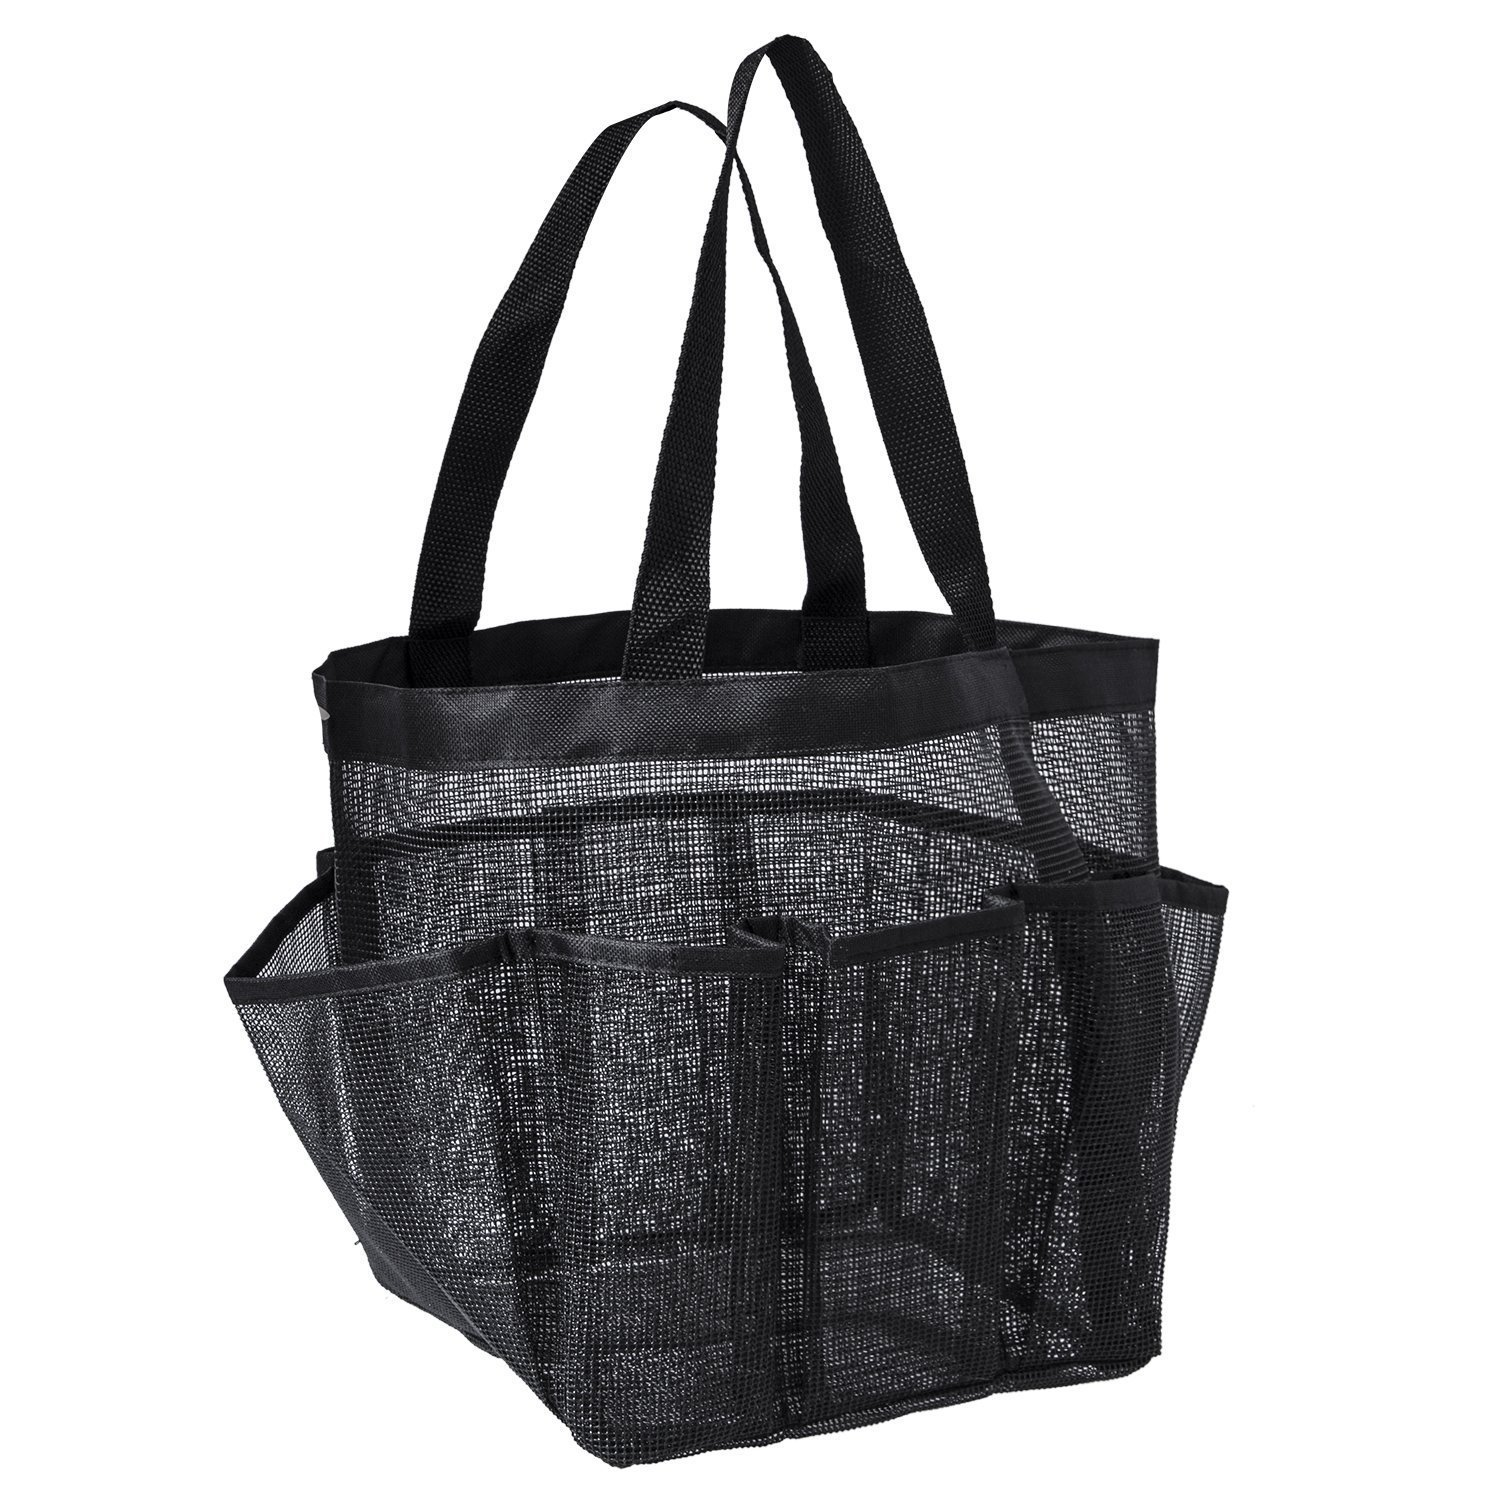 FGGS Portable Mesh Shower Caddy, Quick Dry Shower Tote Hanging Bath & Toiletry Organizer Bag 9 Storage Pockets, Double Handles